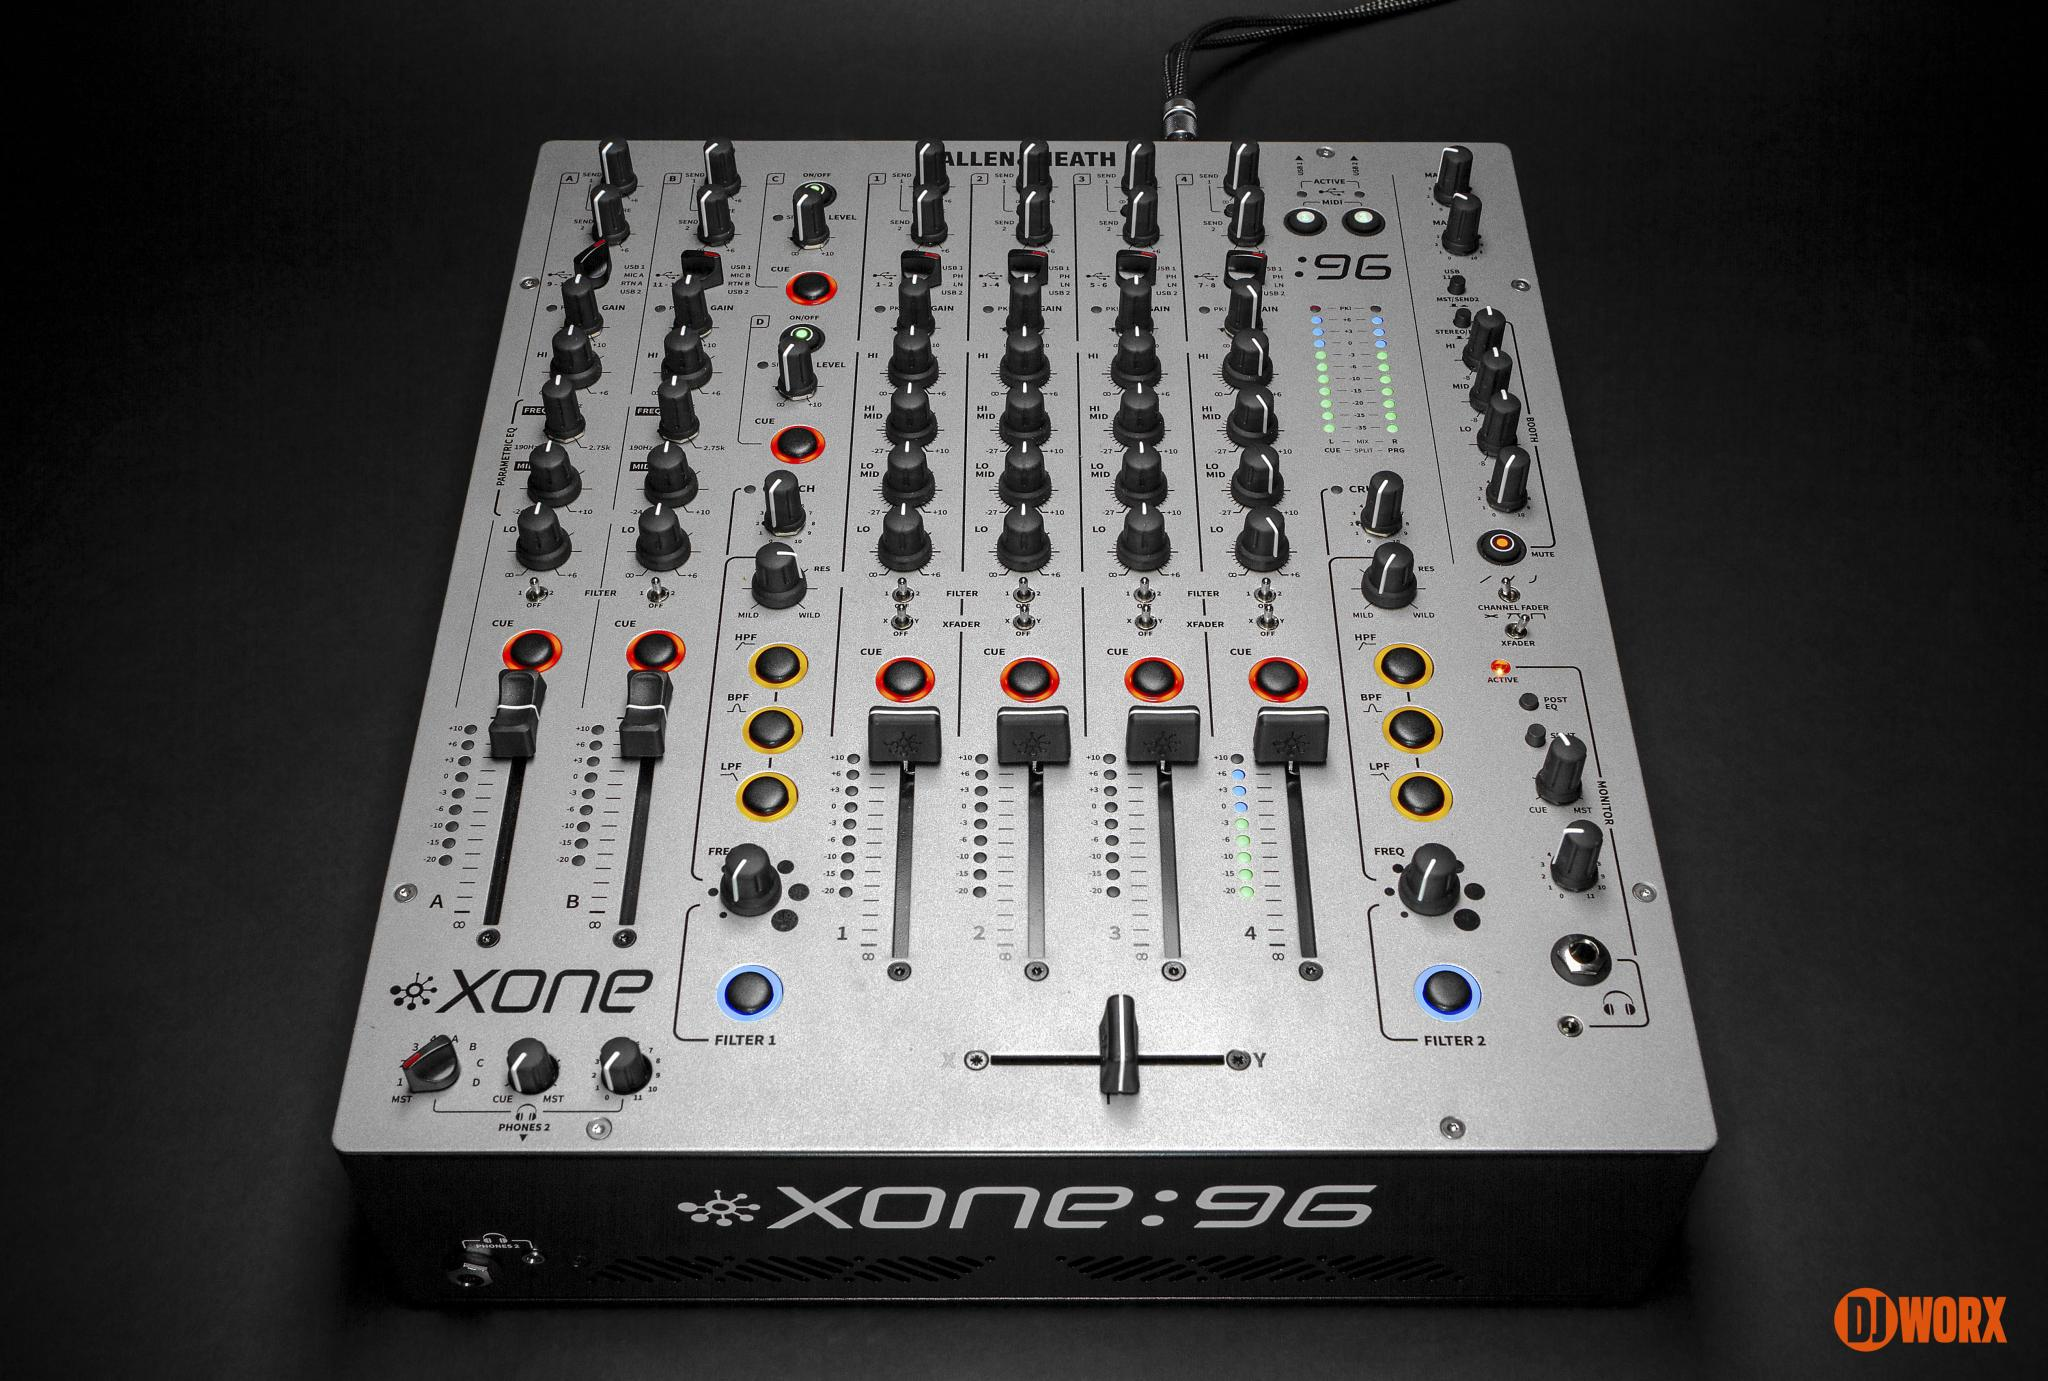 Djworx On Tumblr New Post Has Been Published 130 Looper 96 Wiring Diagram Allen Heath Xone96 Mixer Review First Look Preview